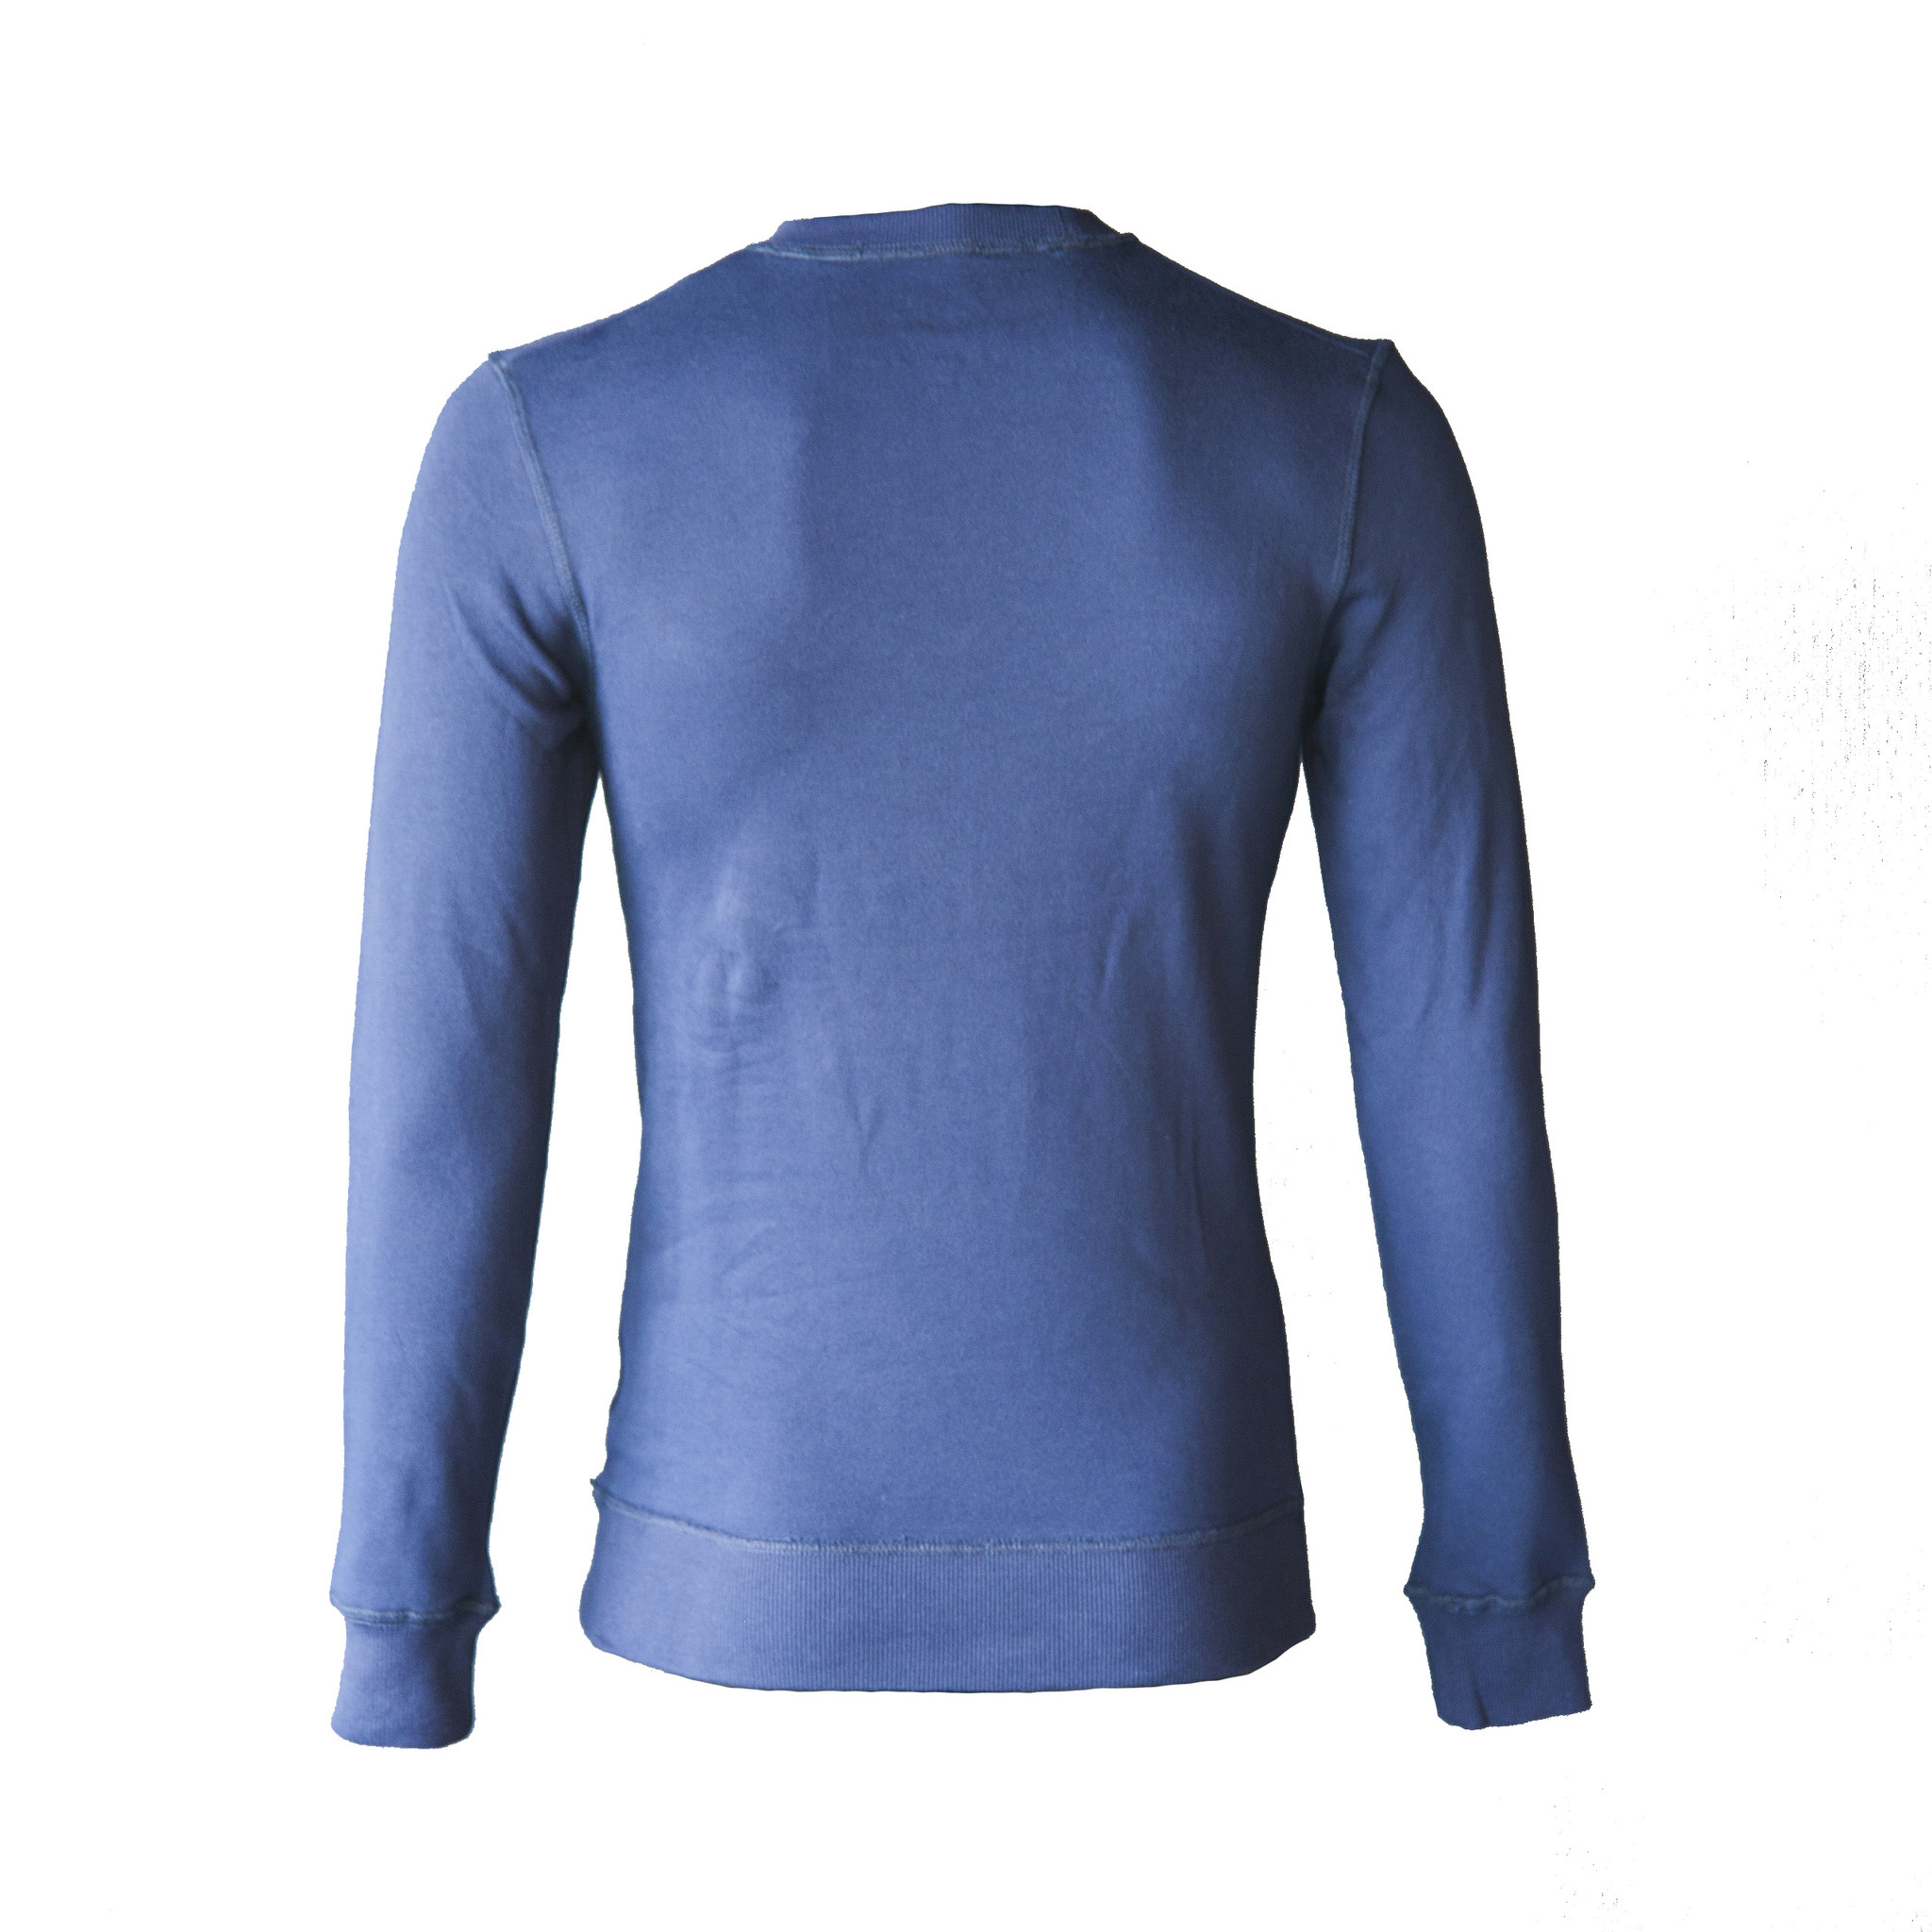 Icelus Clothing Break Rules Sweater Blue